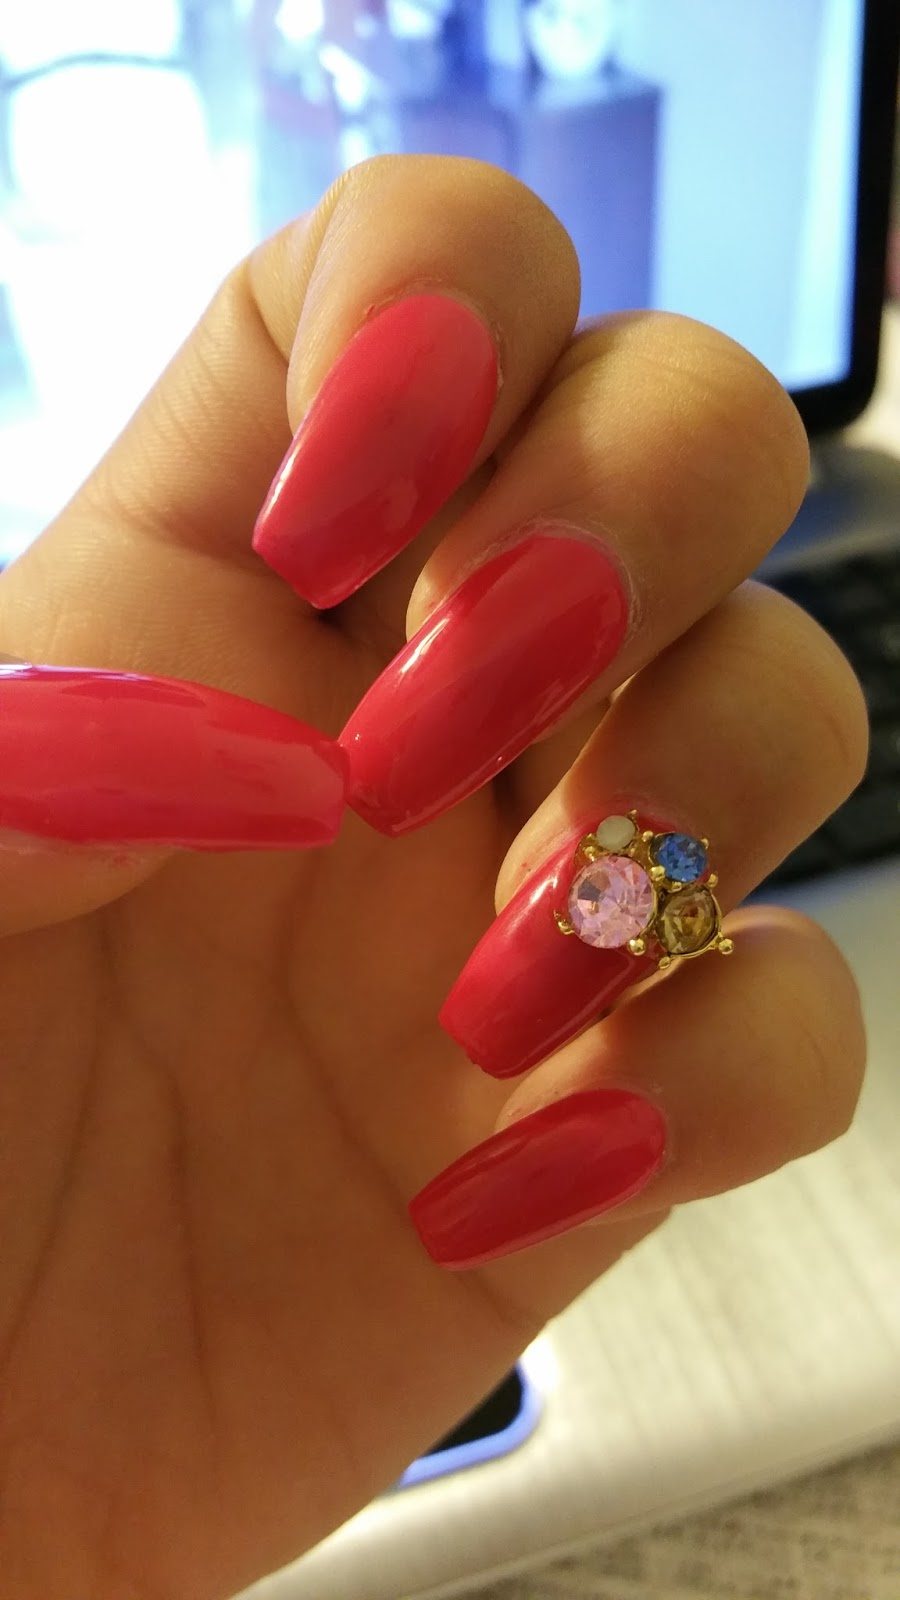 5 things about Acrylic Nails – Lipstick & Vodka